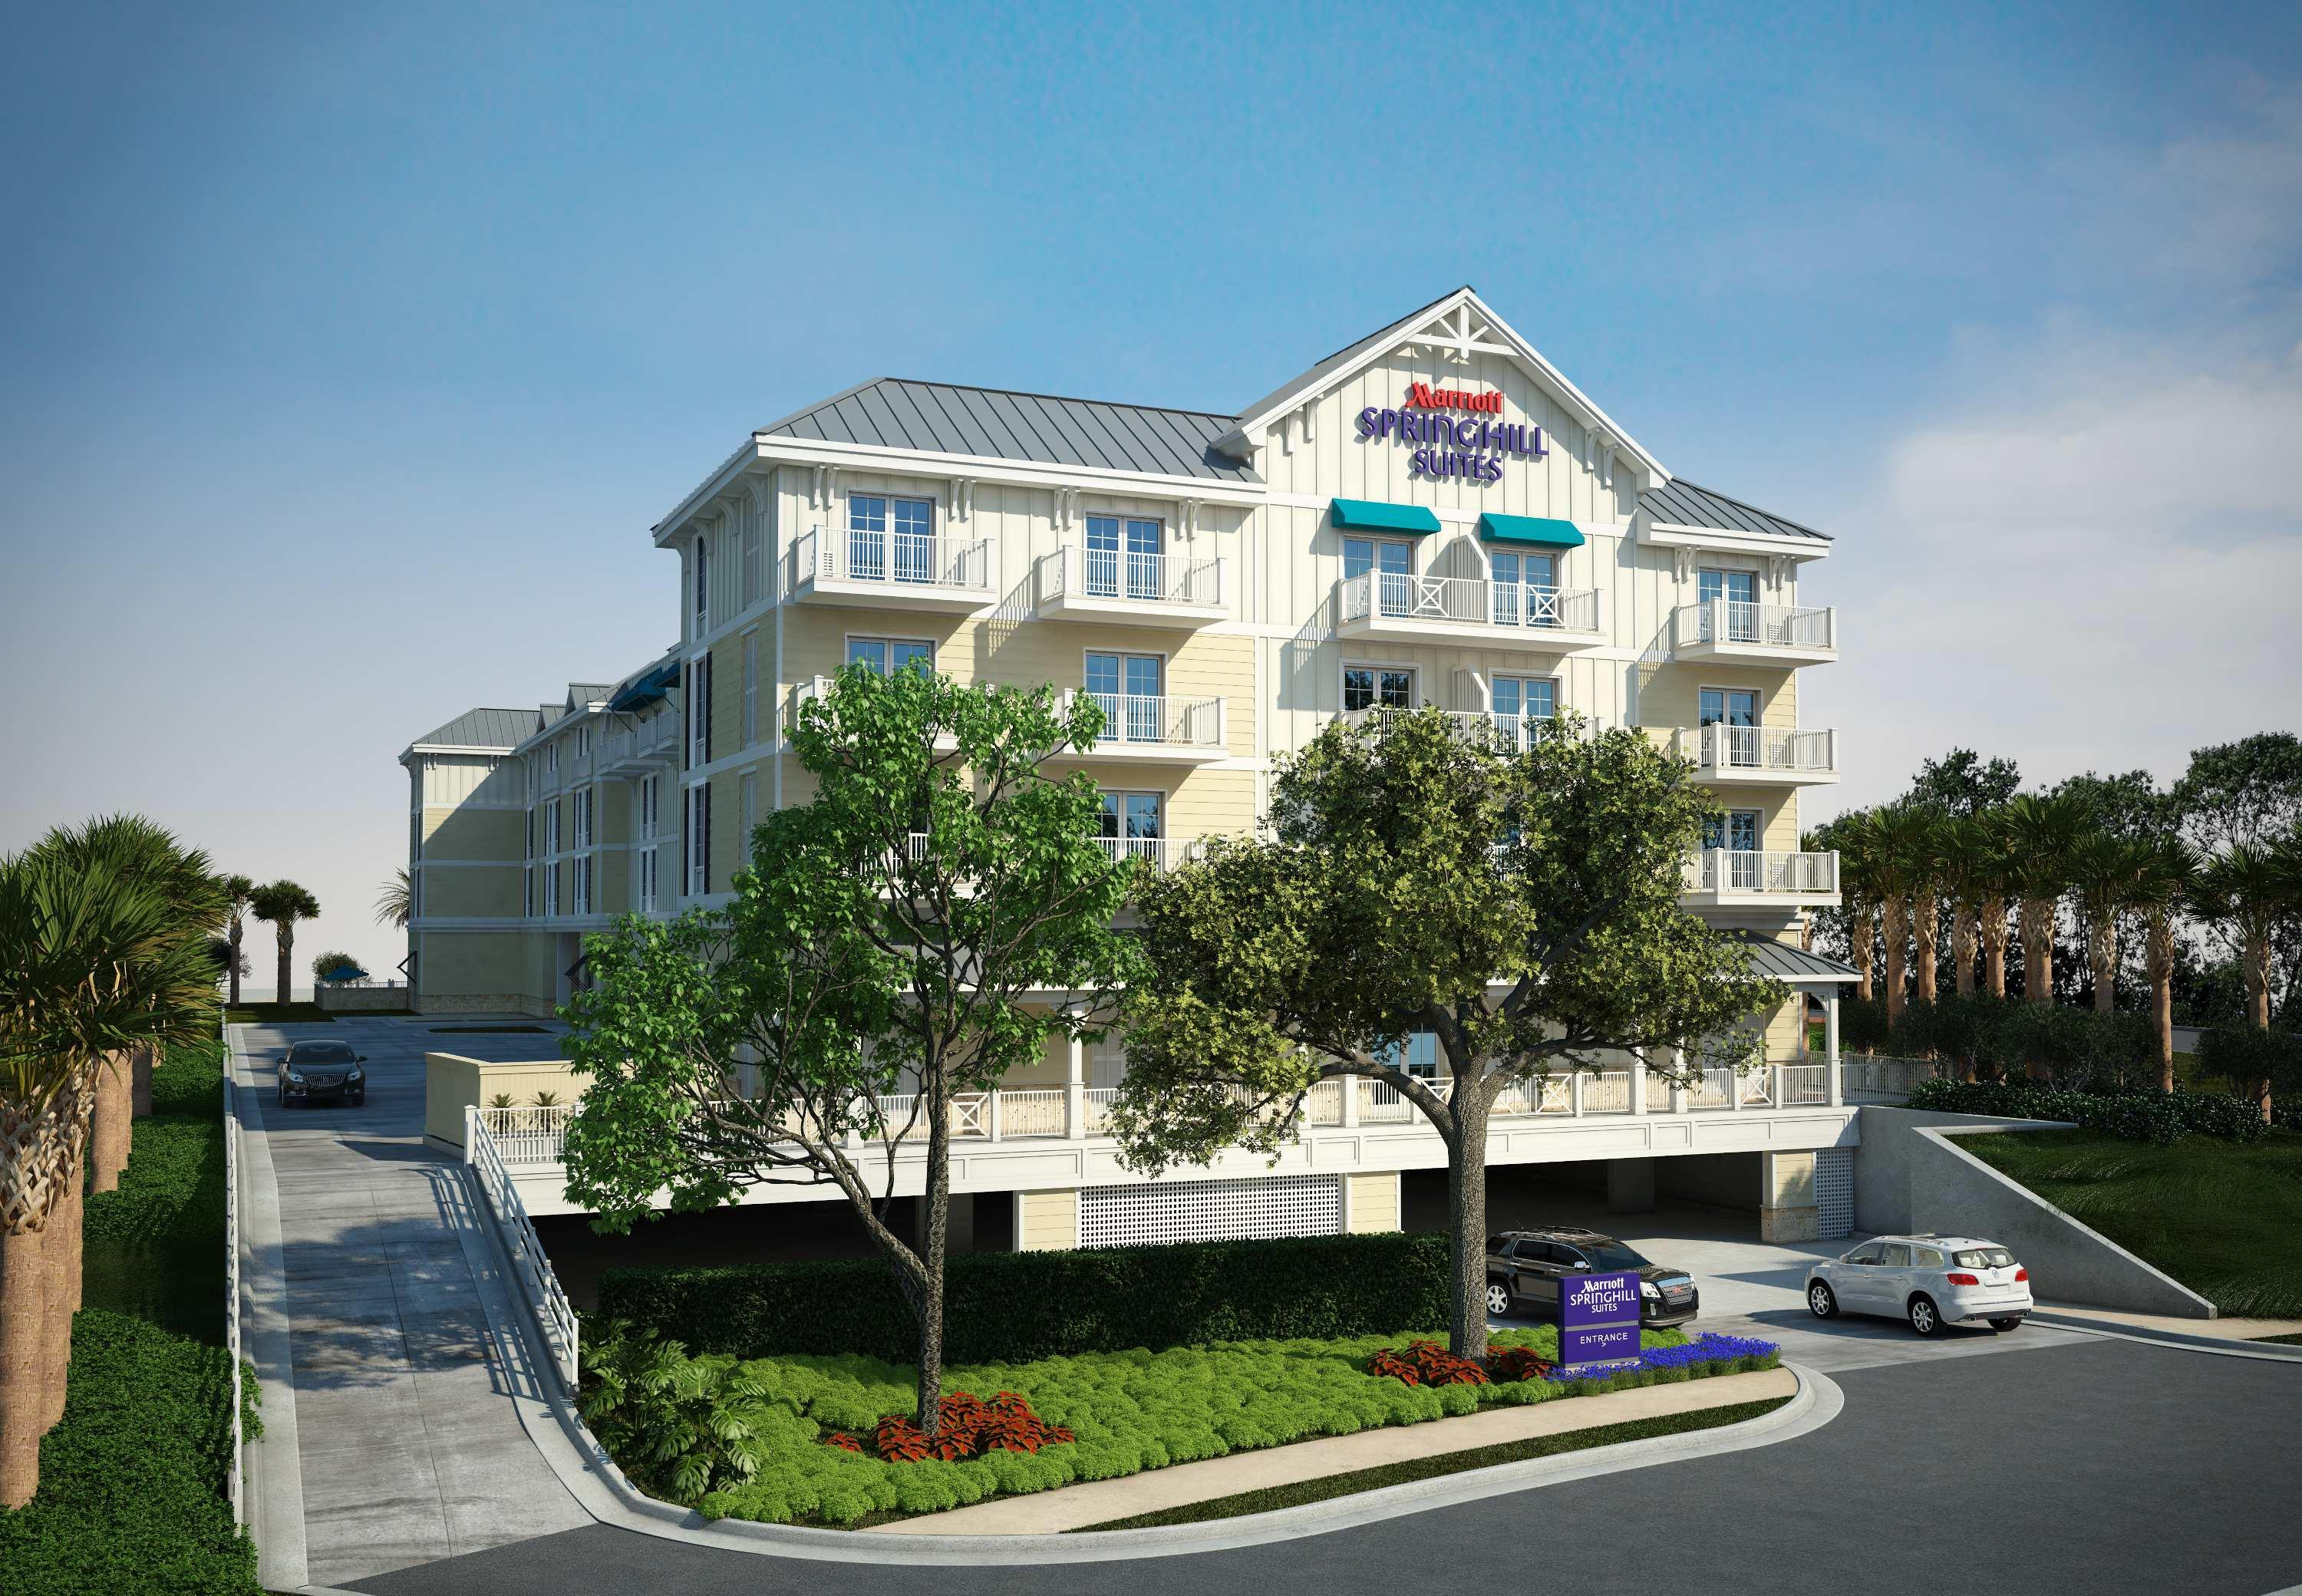 SpringHill Suites by Marriott New Smyrna Beach image 1